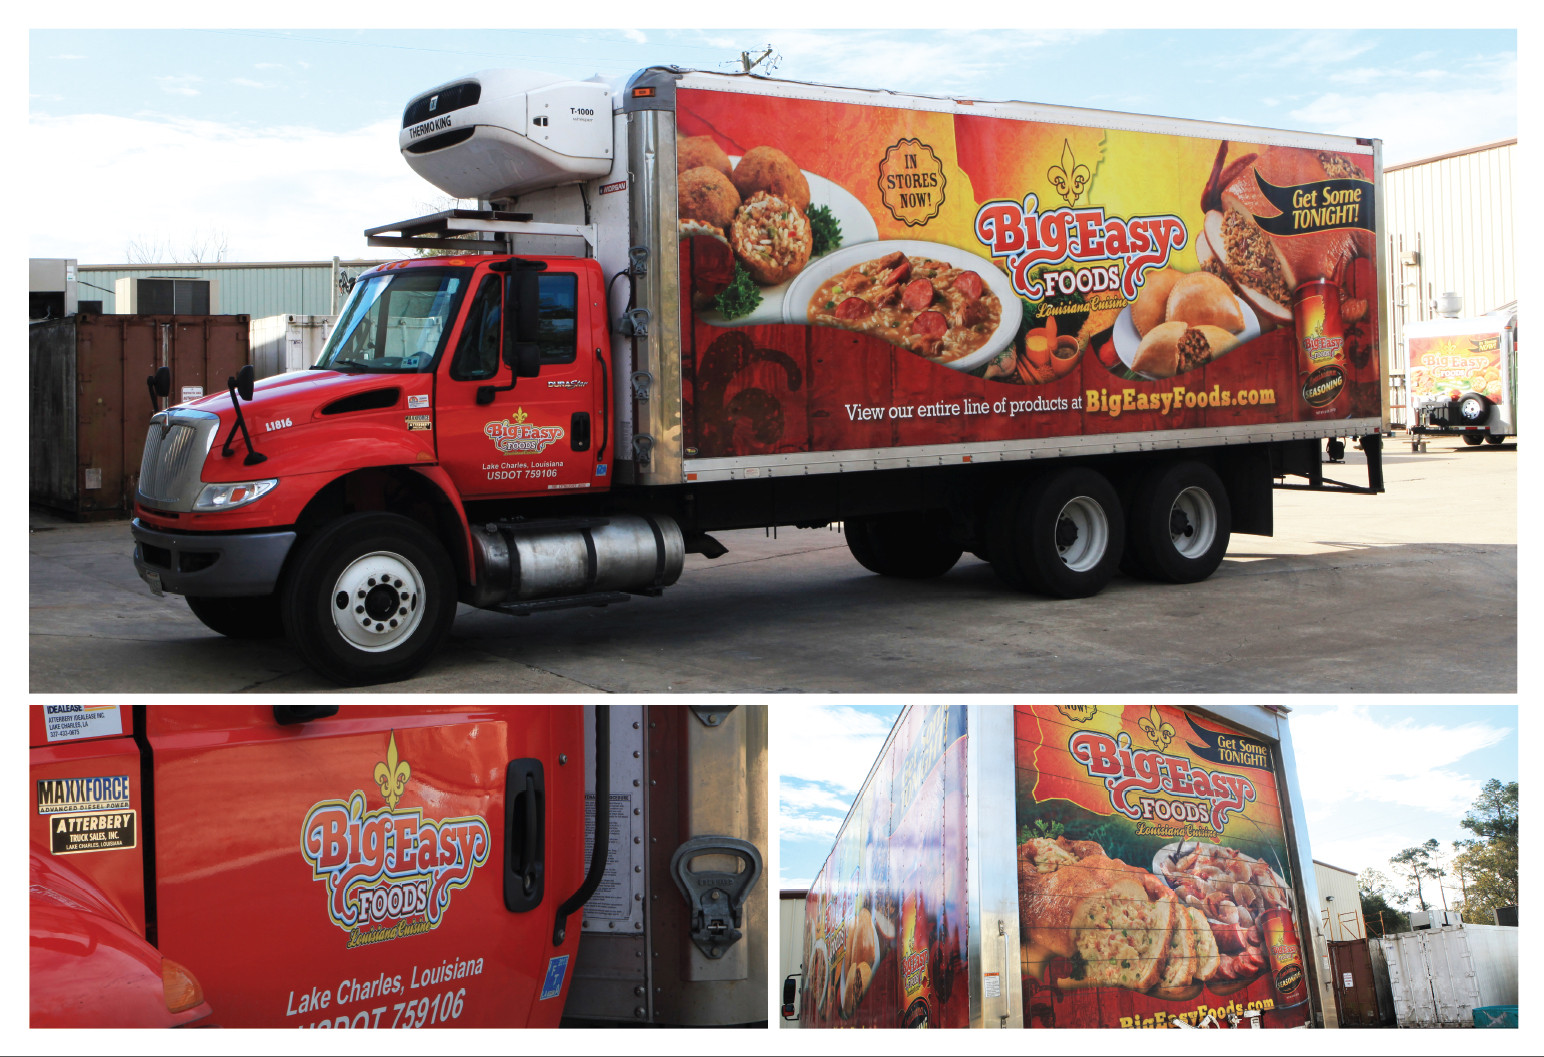 Big Easy Foods Delivery Truck - Bronze ADDY©